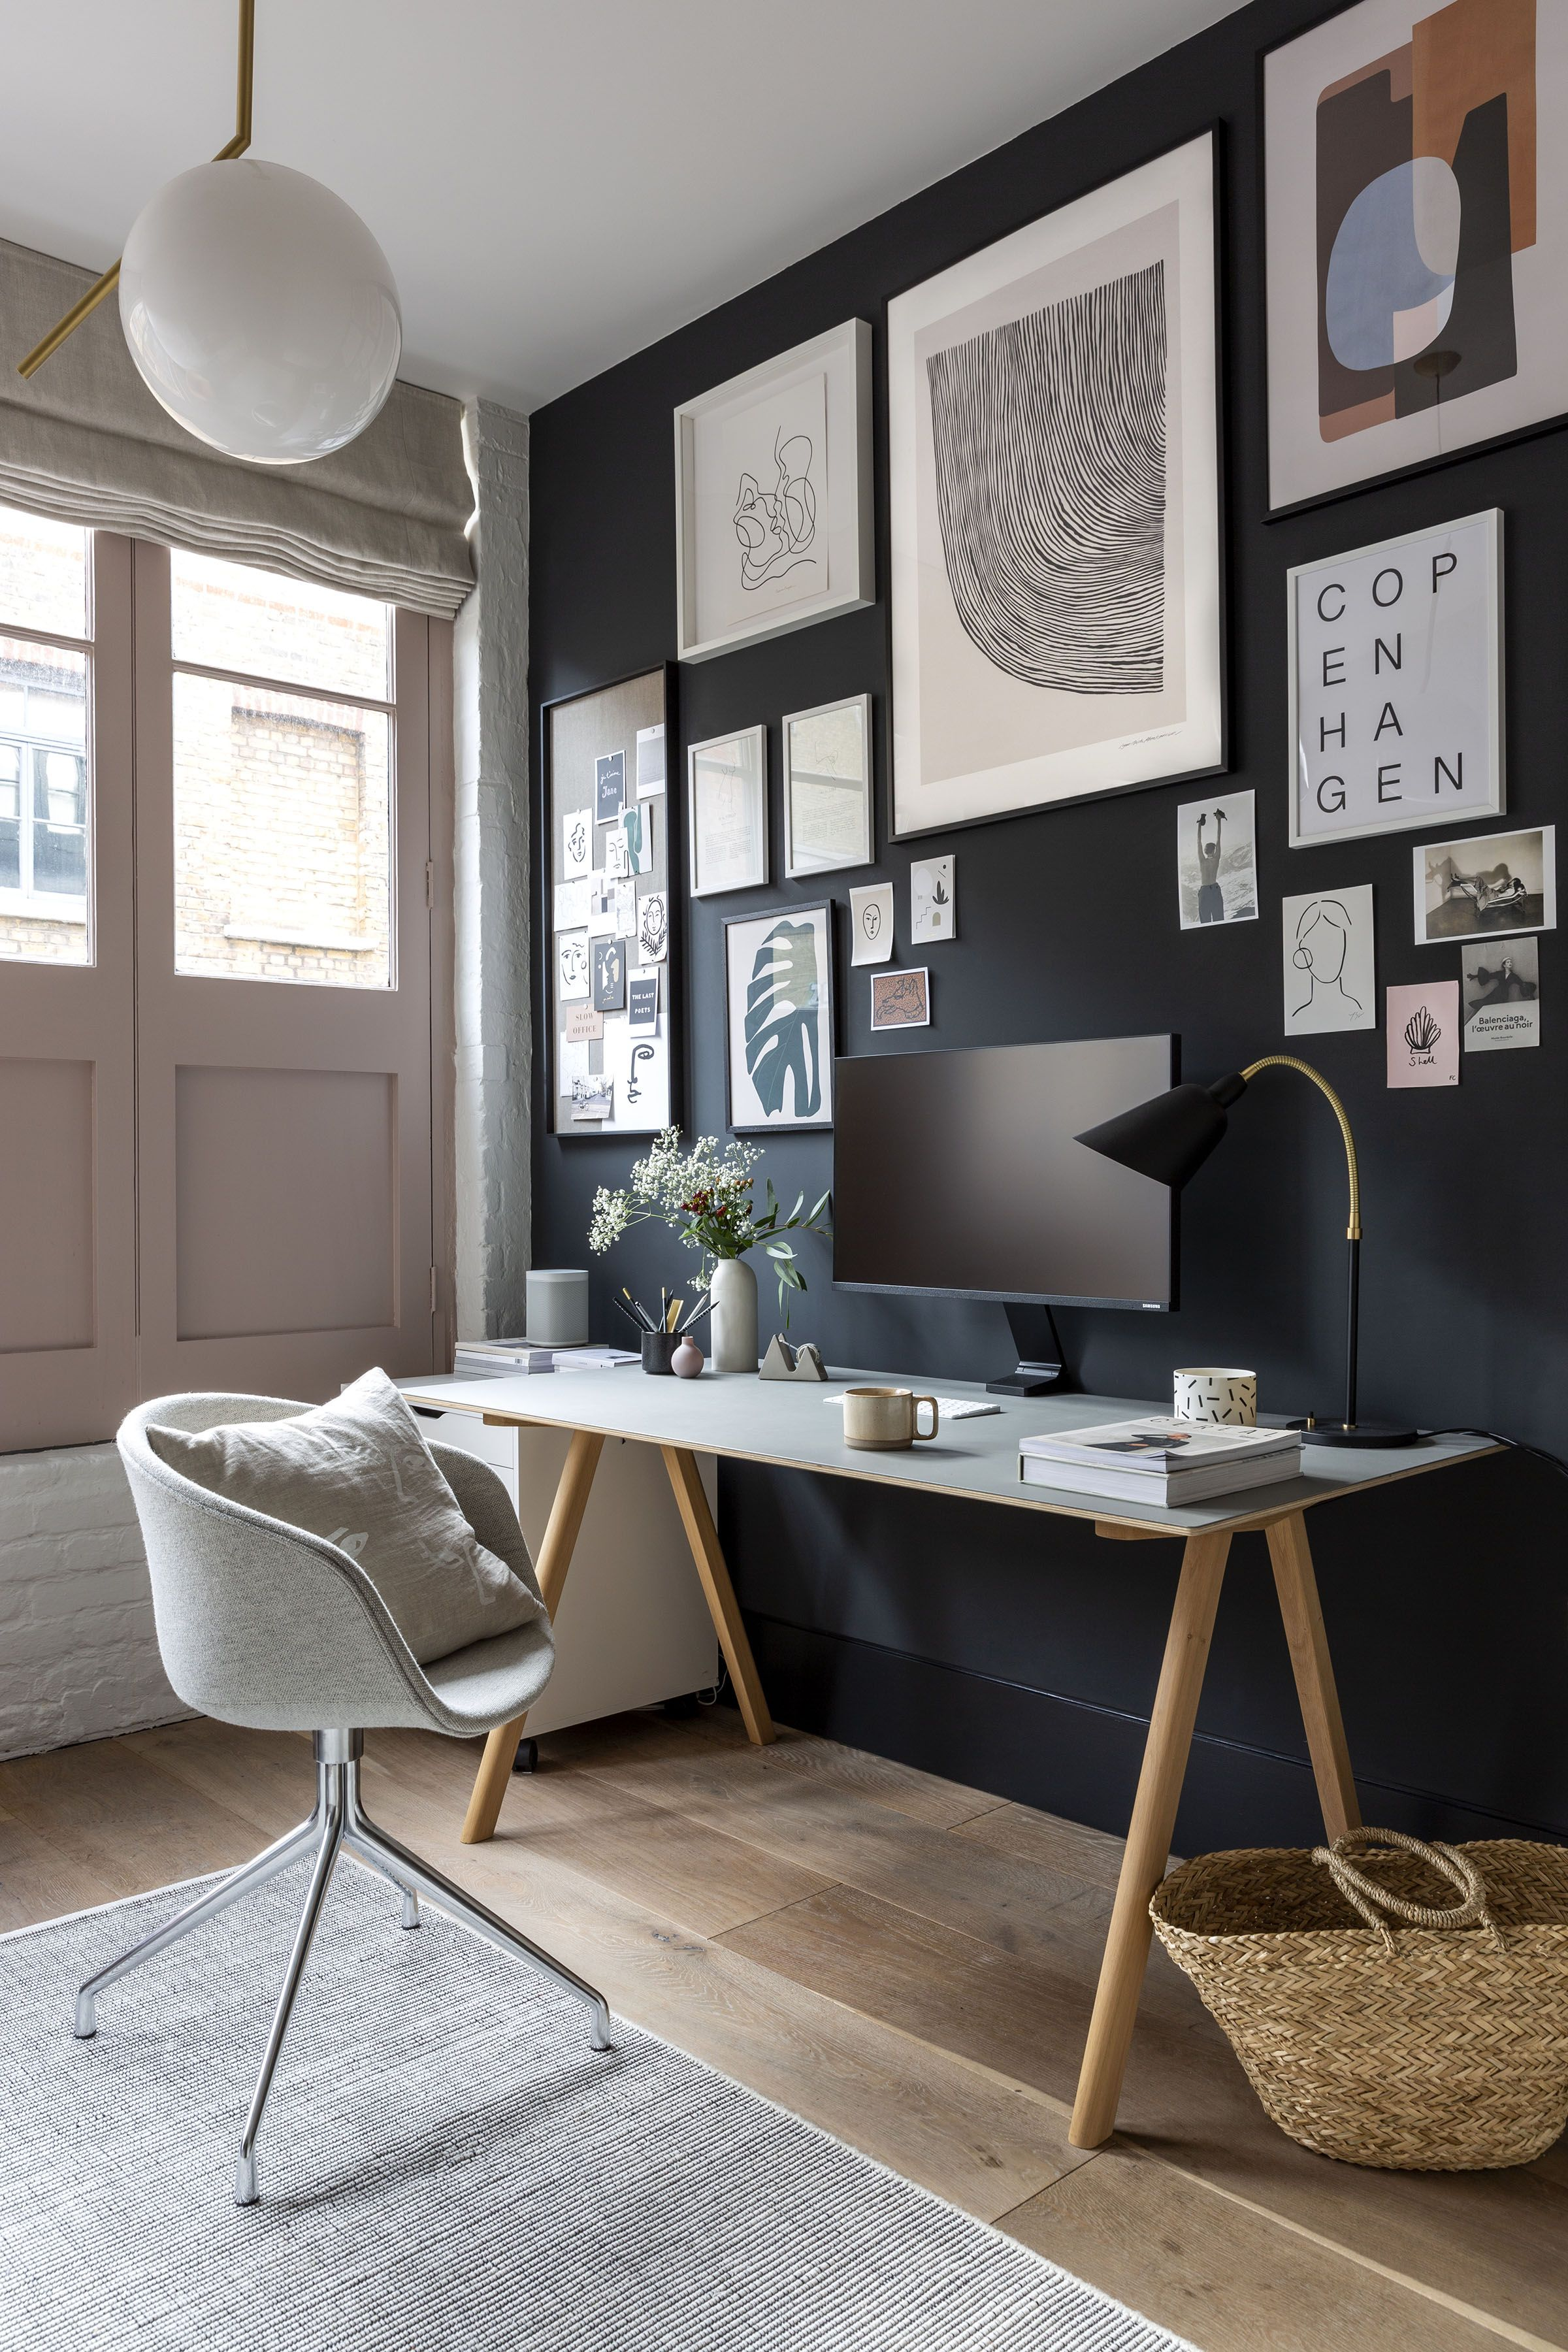 Photo of A cool, minimalist home office in a Shoreditch loft apartment